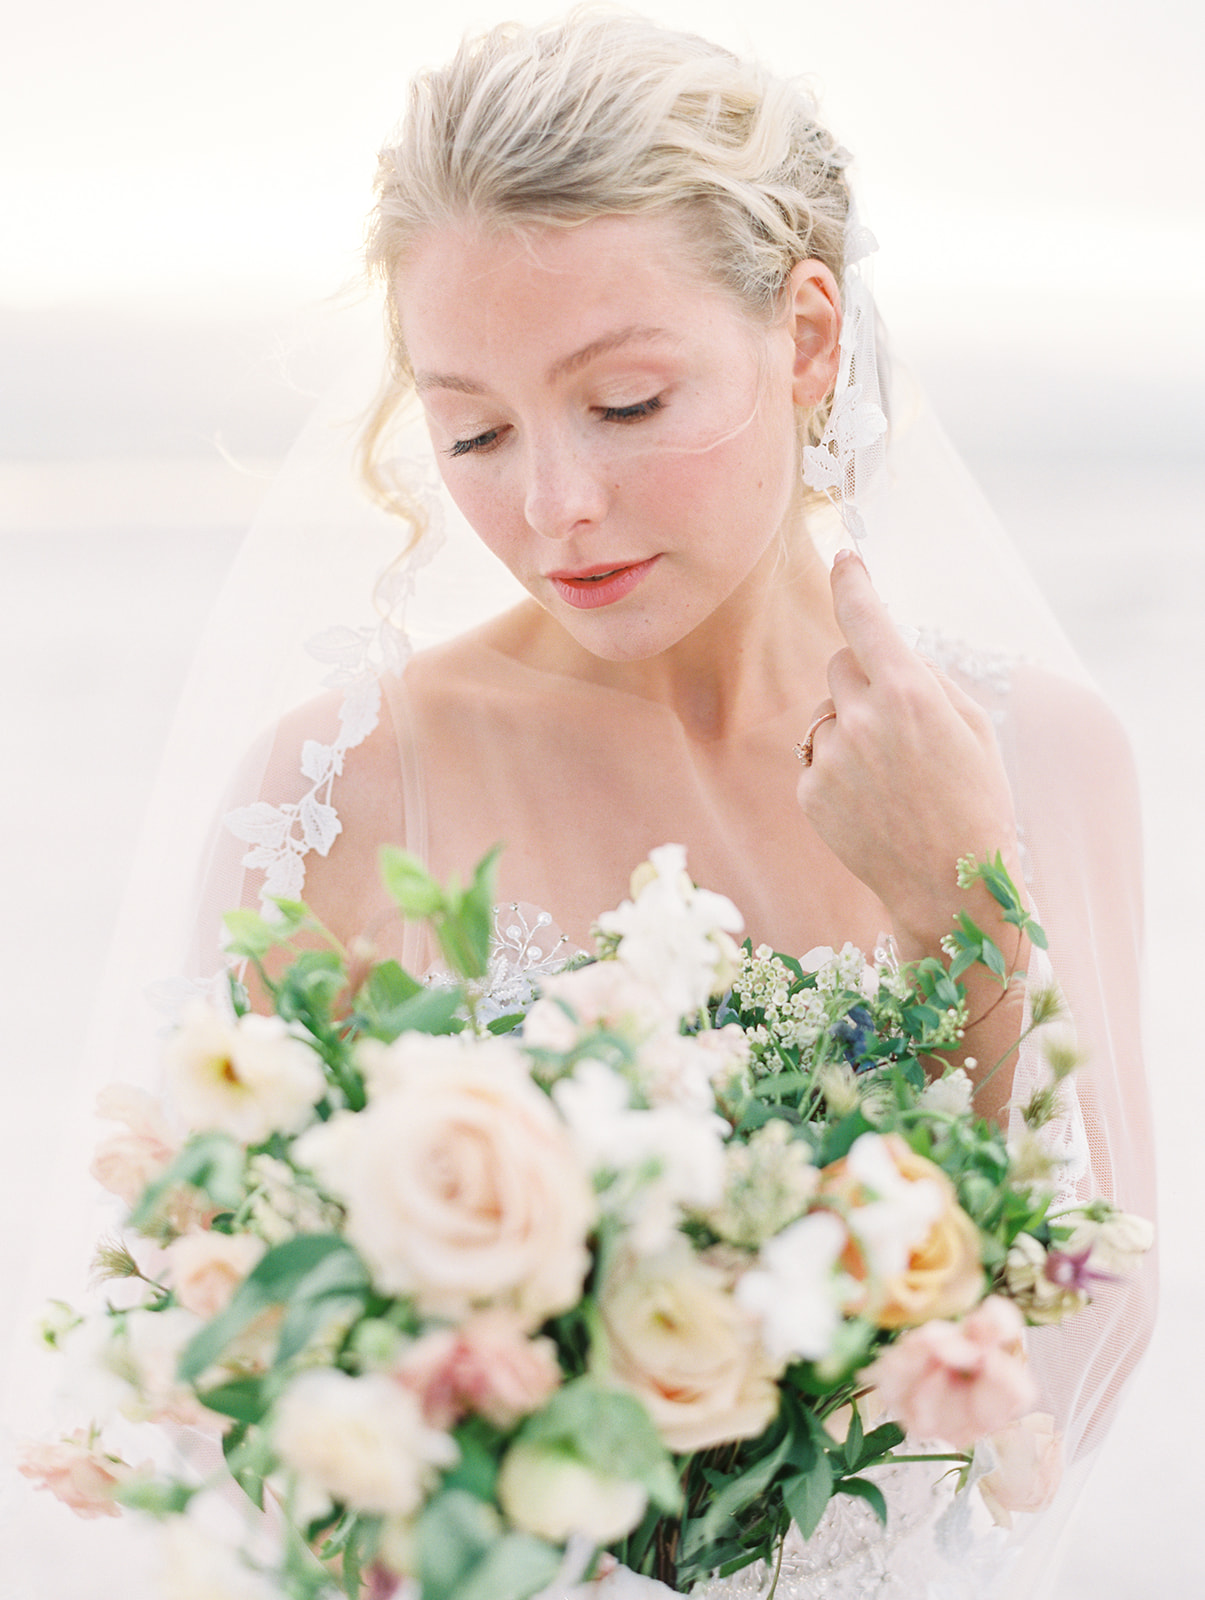 ETHEREAL WEDDING INSPIRATION IN THE DESERT -